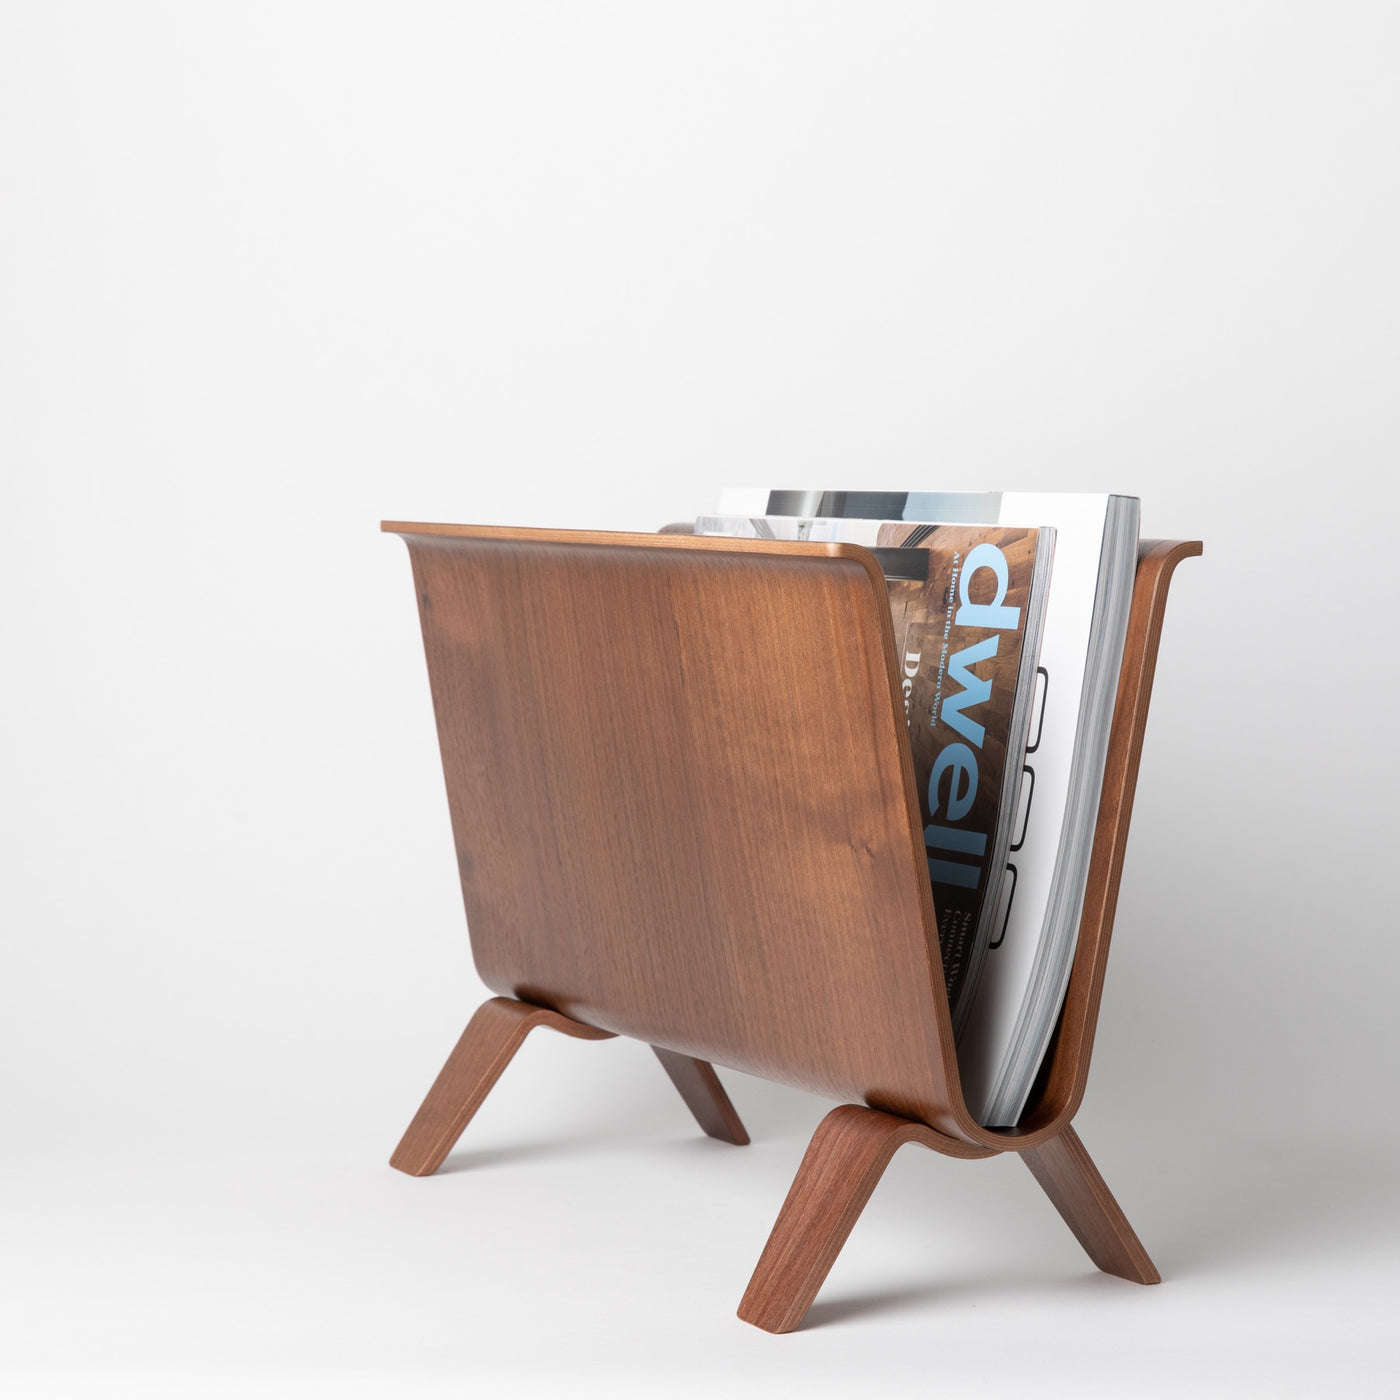 Saito Wood Magazine Rack - Autotype Design Goods